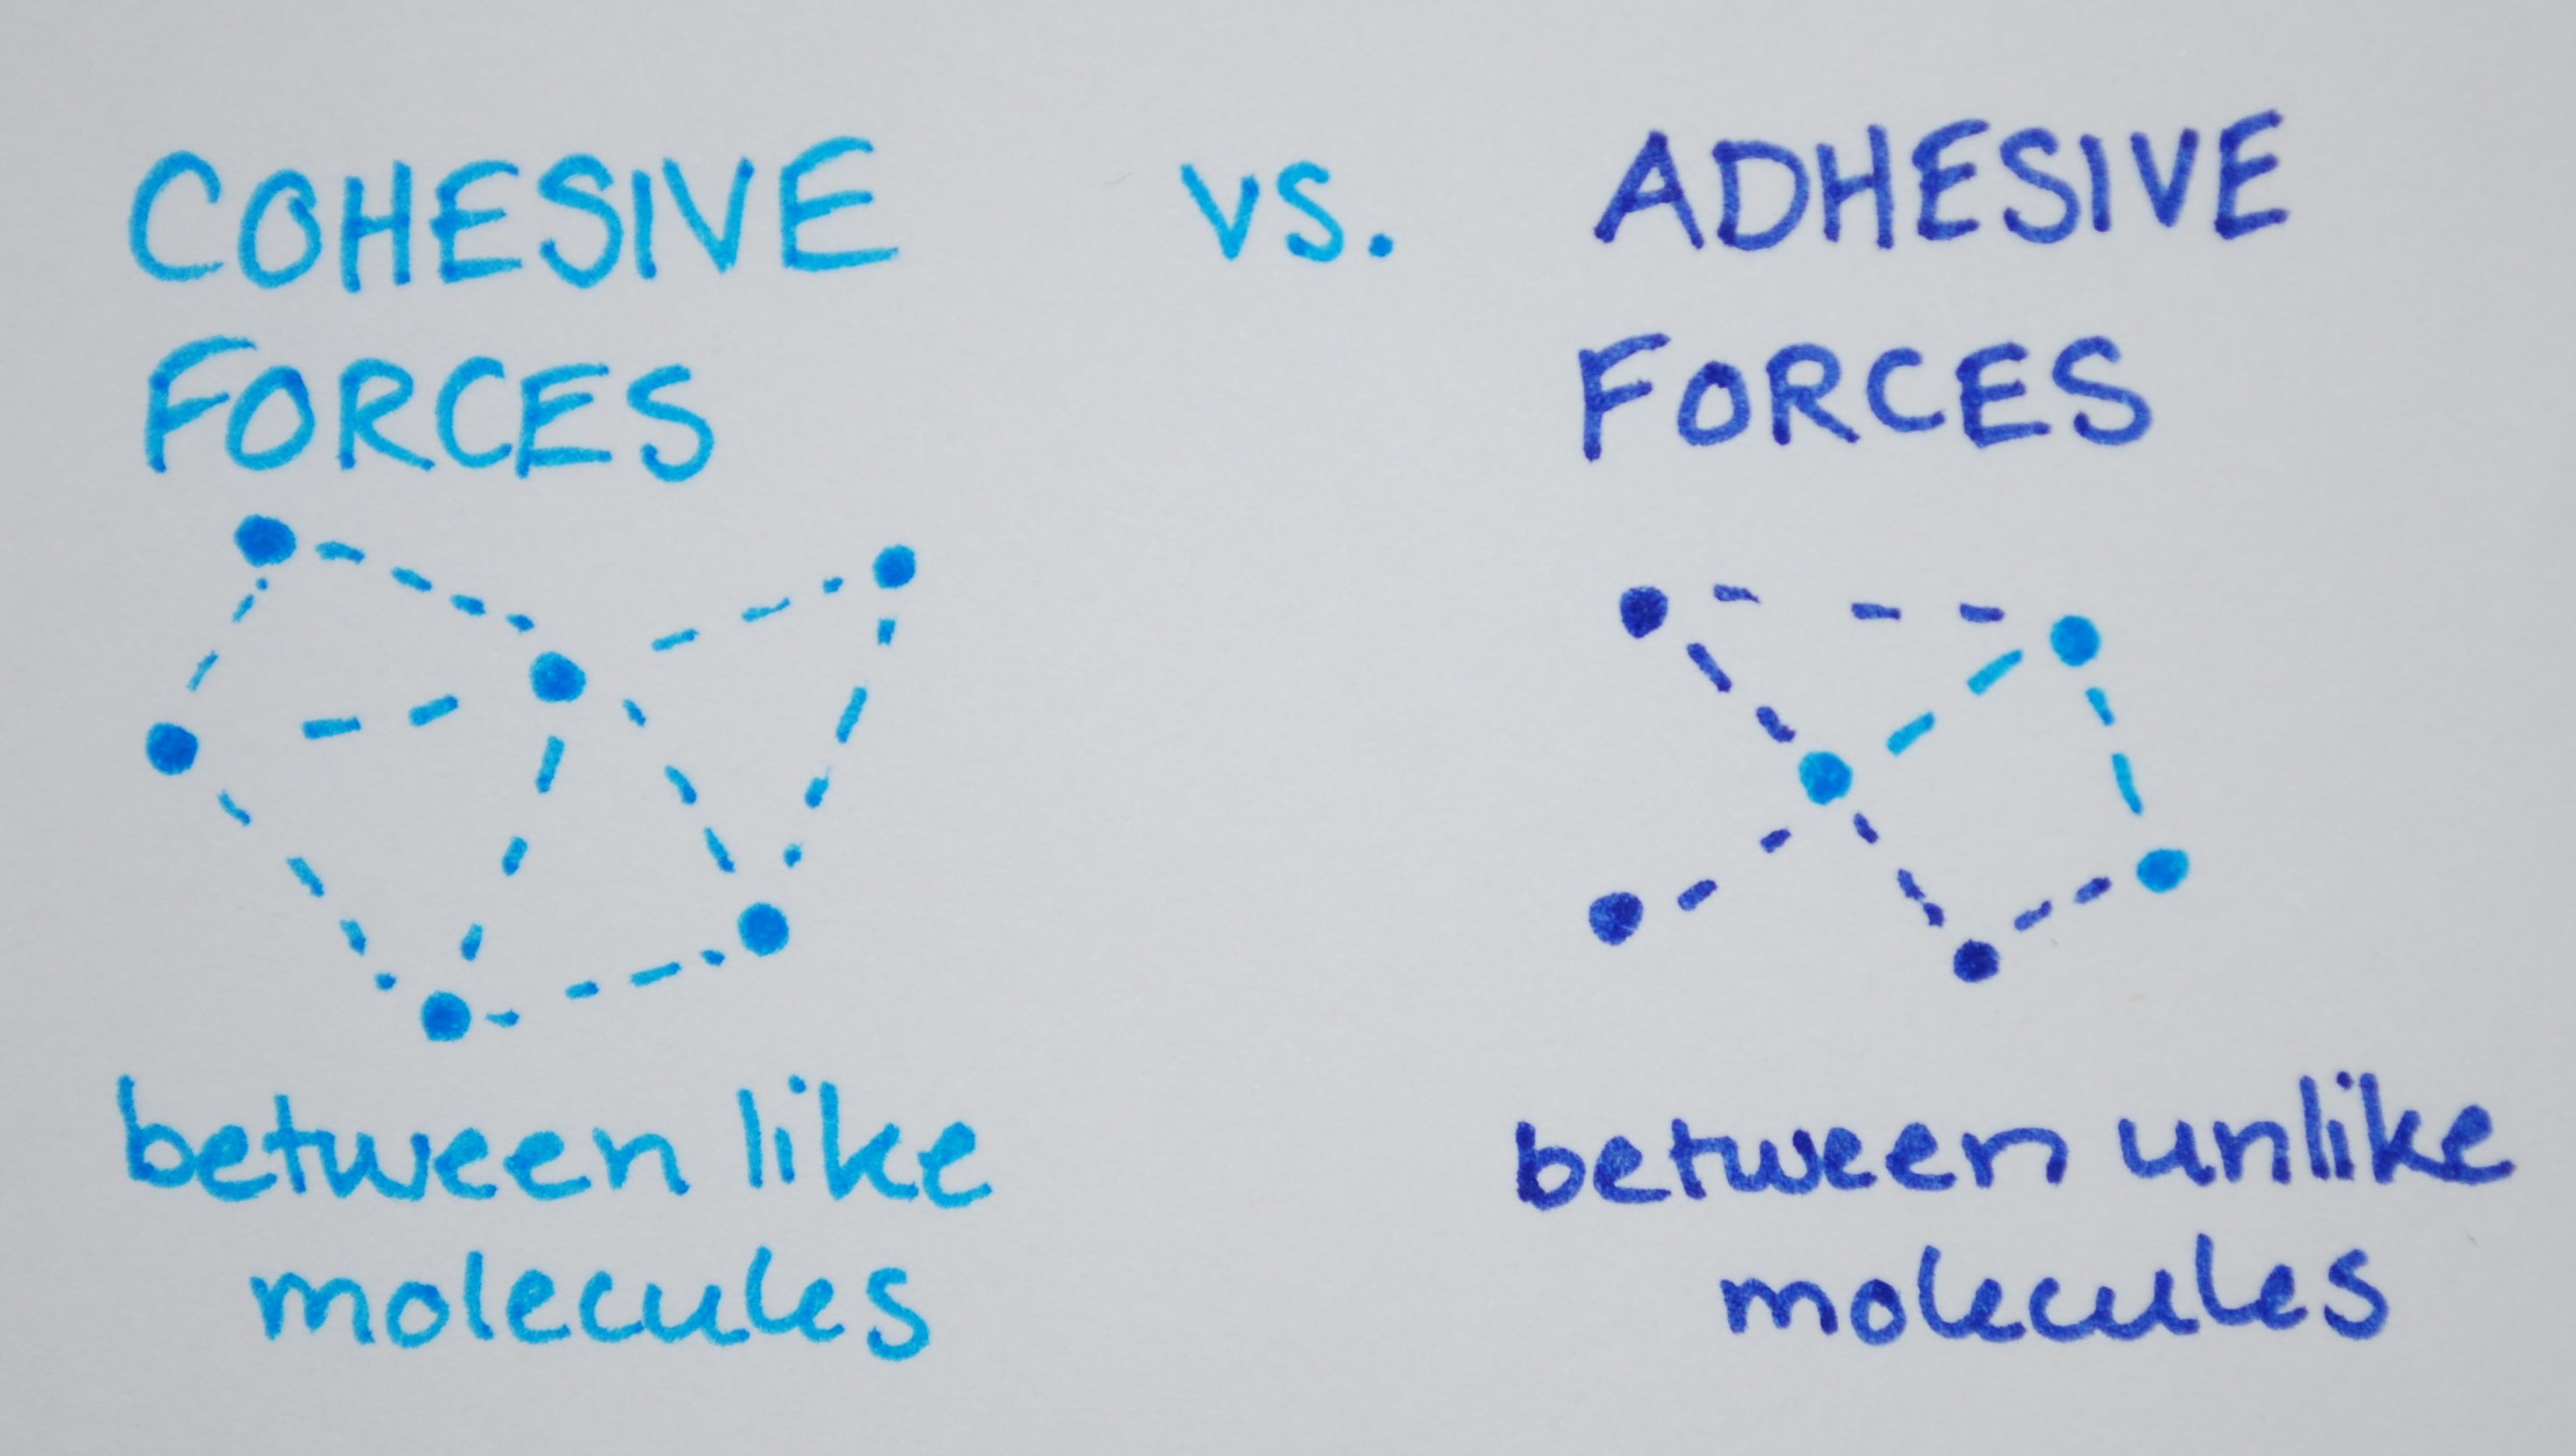 Cohesive Adhesive Forces